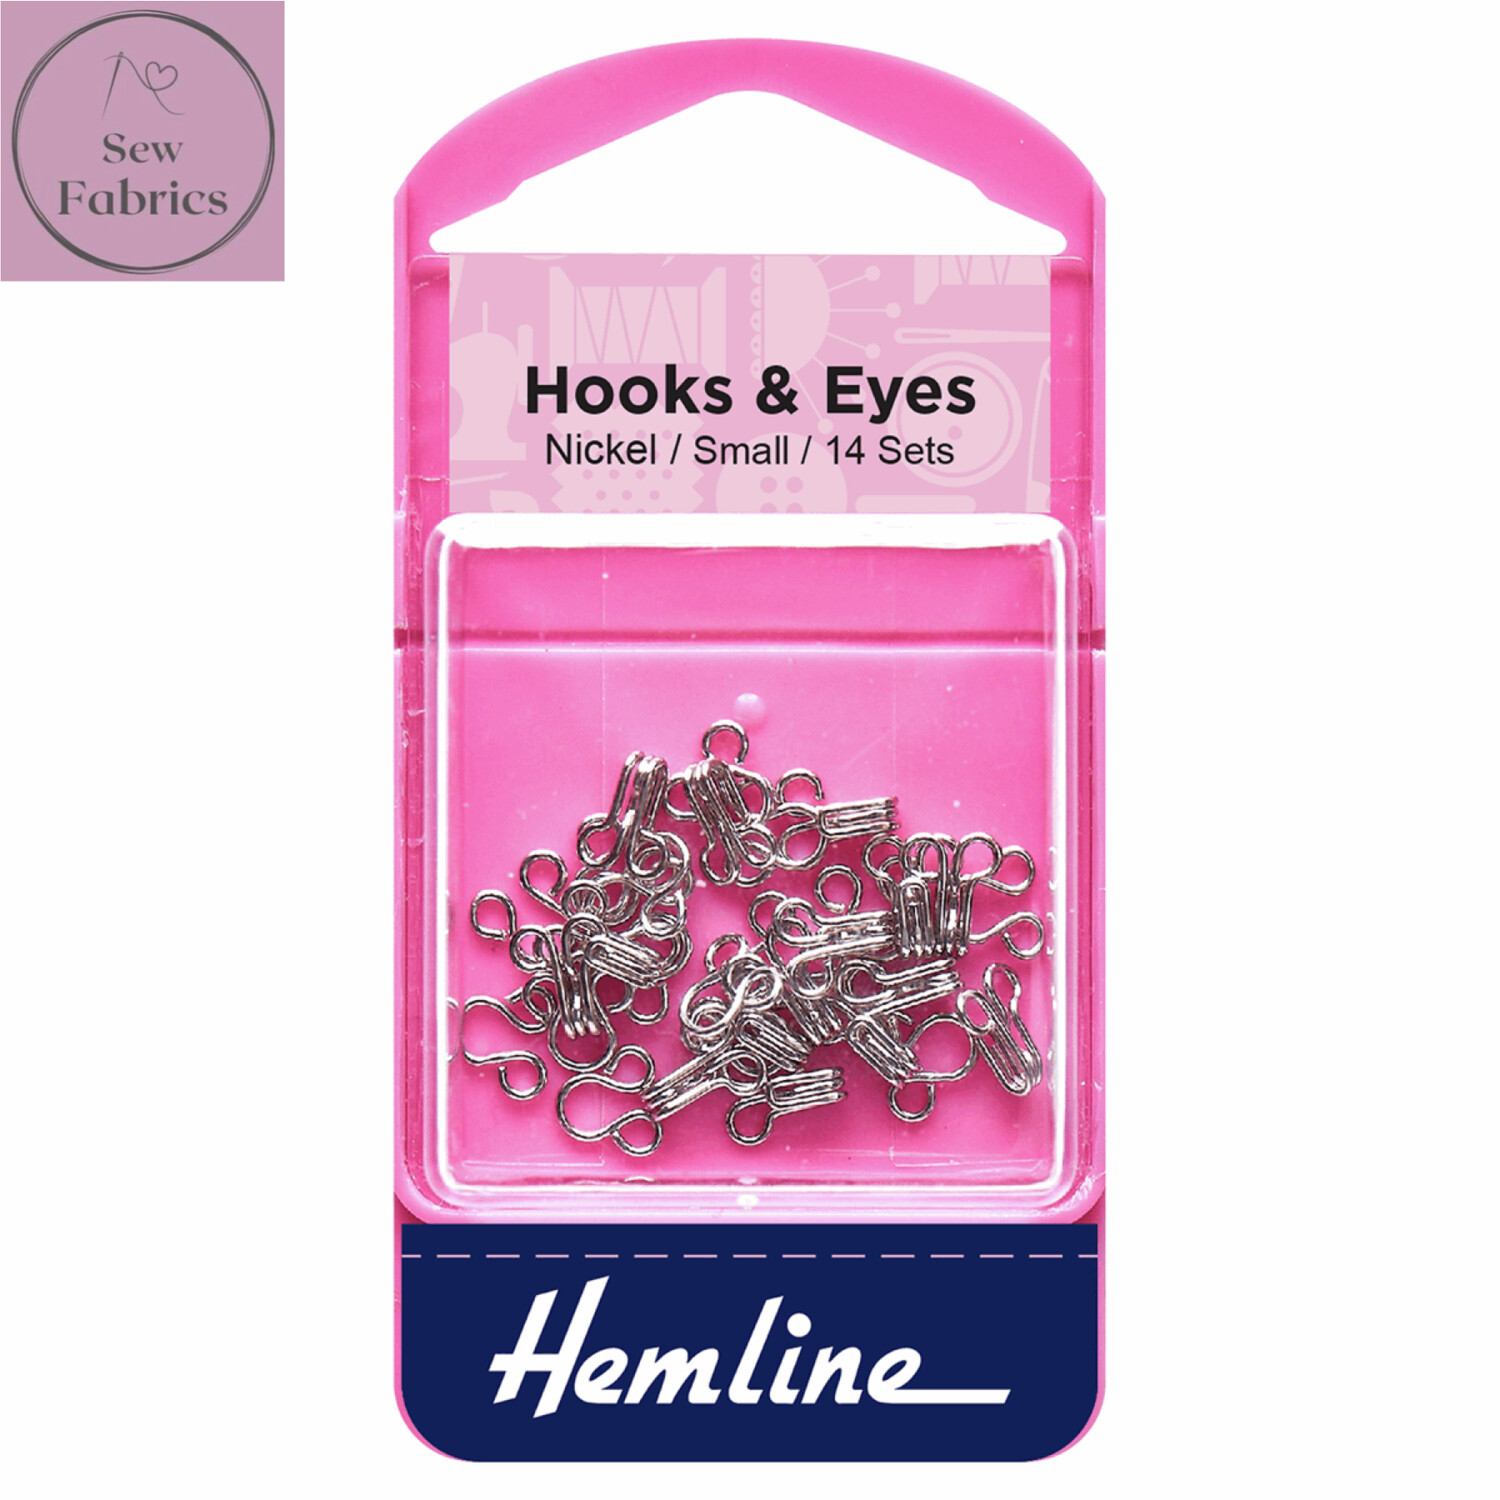 Hemline Nickel Coated Hooks and Eyes, Size 1, Small, Pack of 14 sets